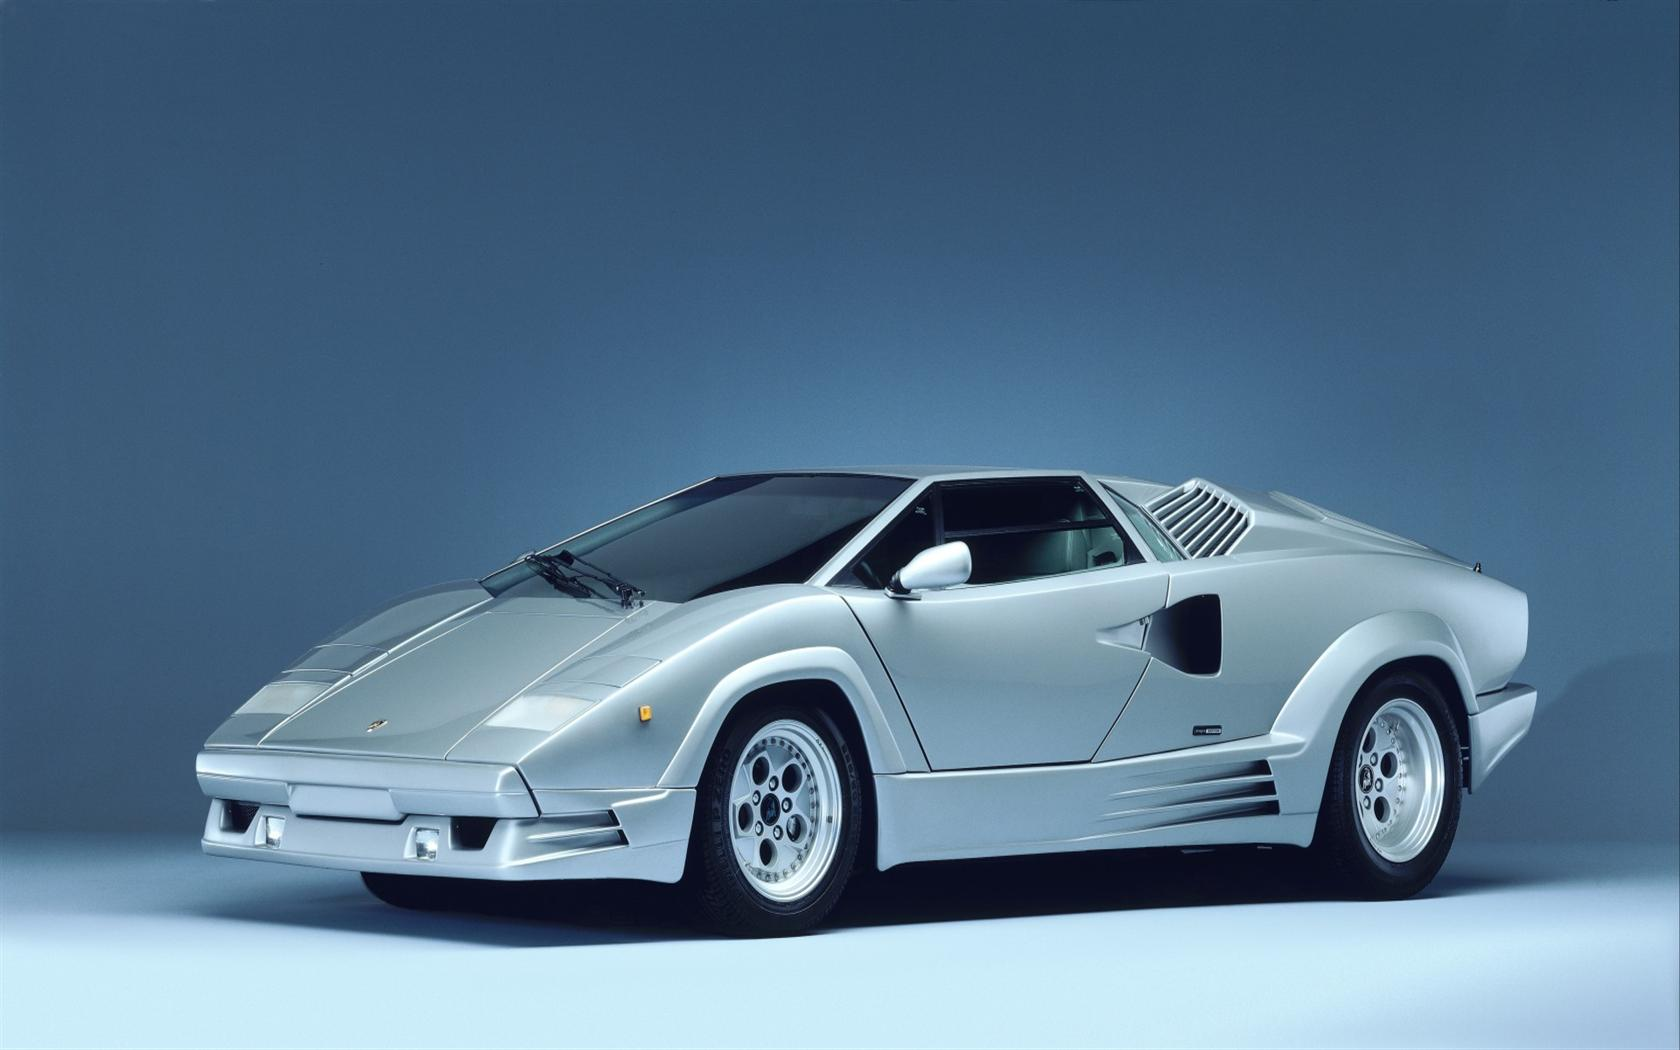 1989 lamborghini countach 25th anniversary images photo 1989 lamborghini countach 25th annv 05. Black Bedroom Furniture Sets. Home Design Ideas